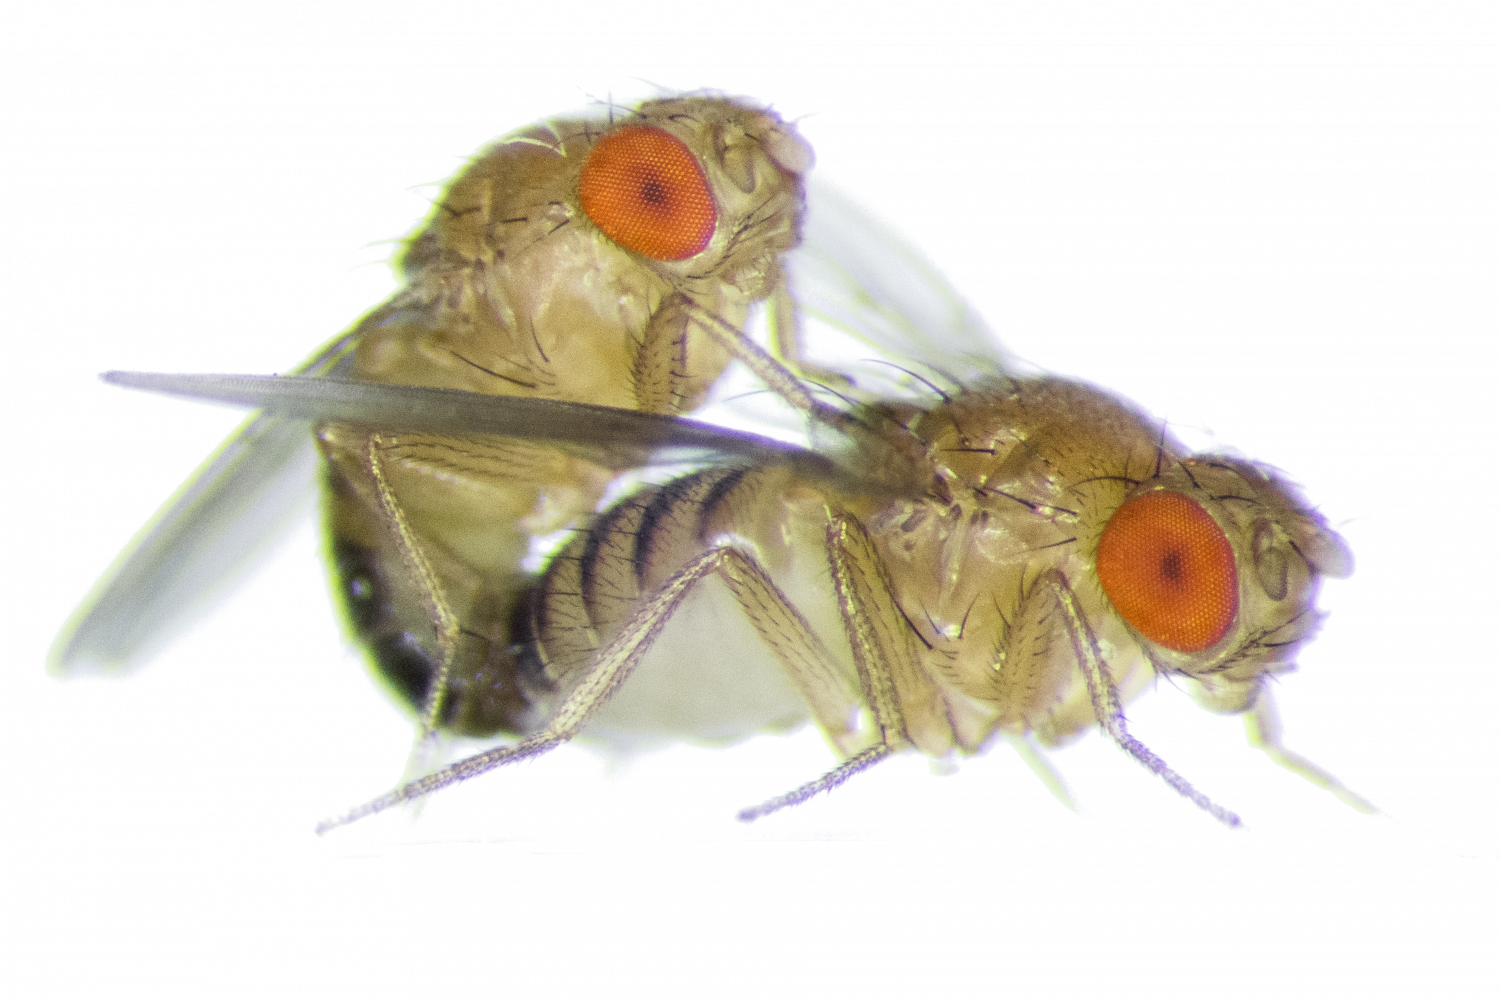 drosophila drawing invertebrate